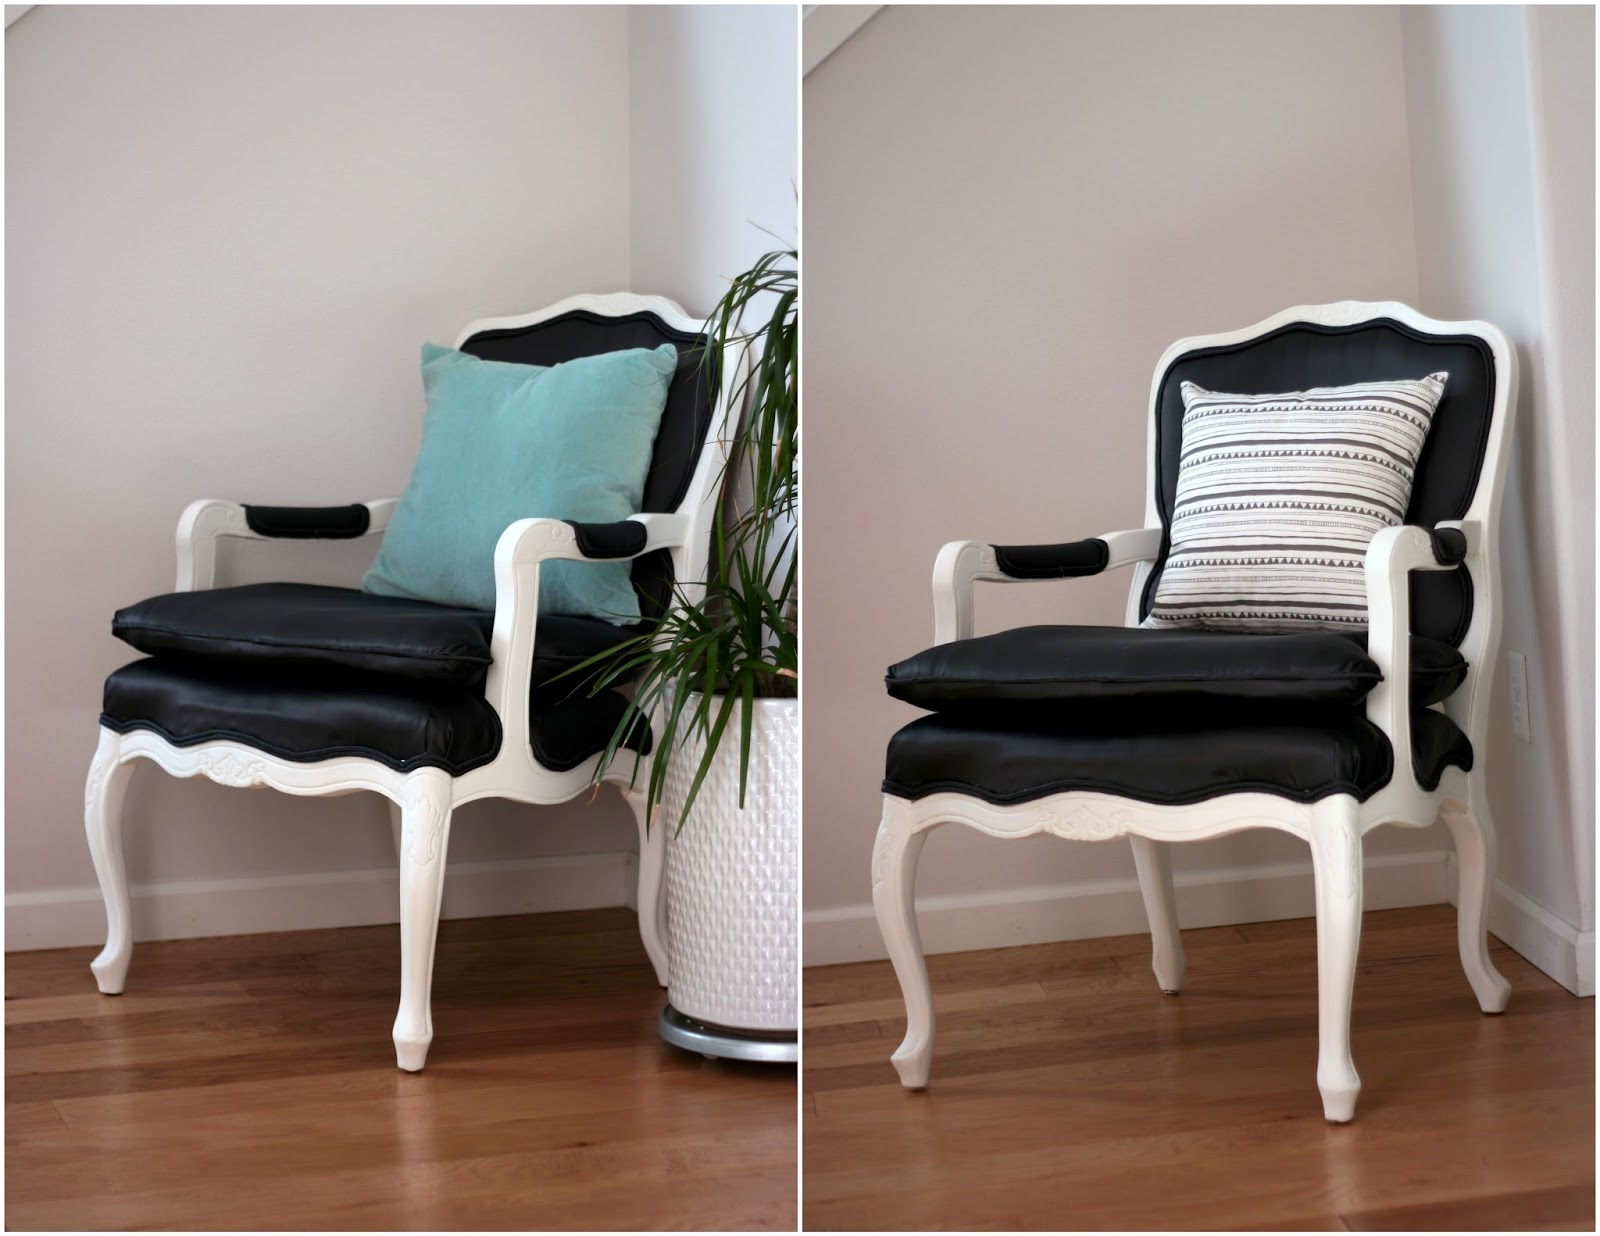 How to reupholster a louis chair - 9 13 2013